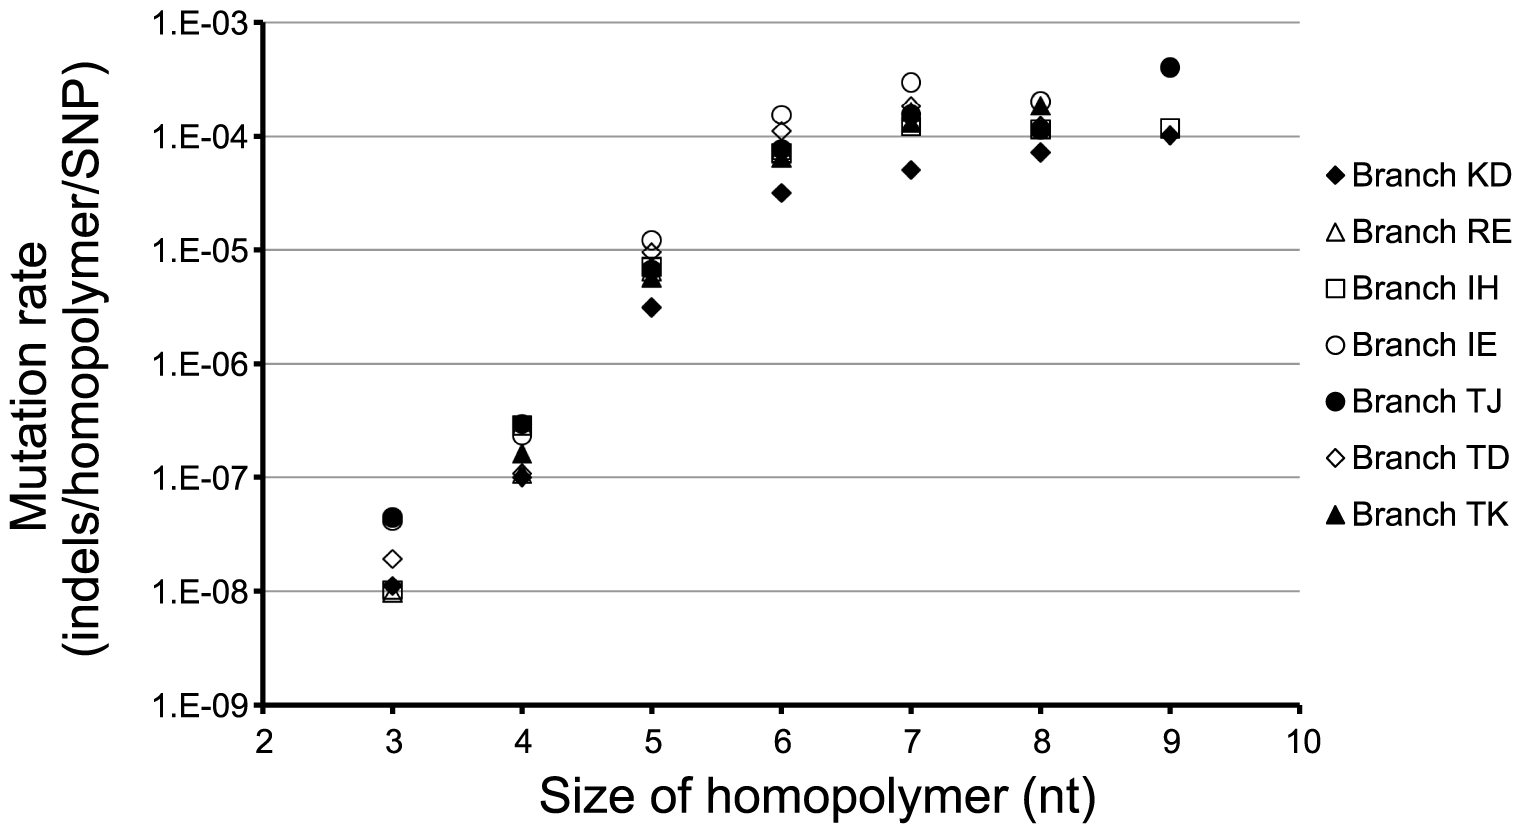 Mutation rates of homopolymers.